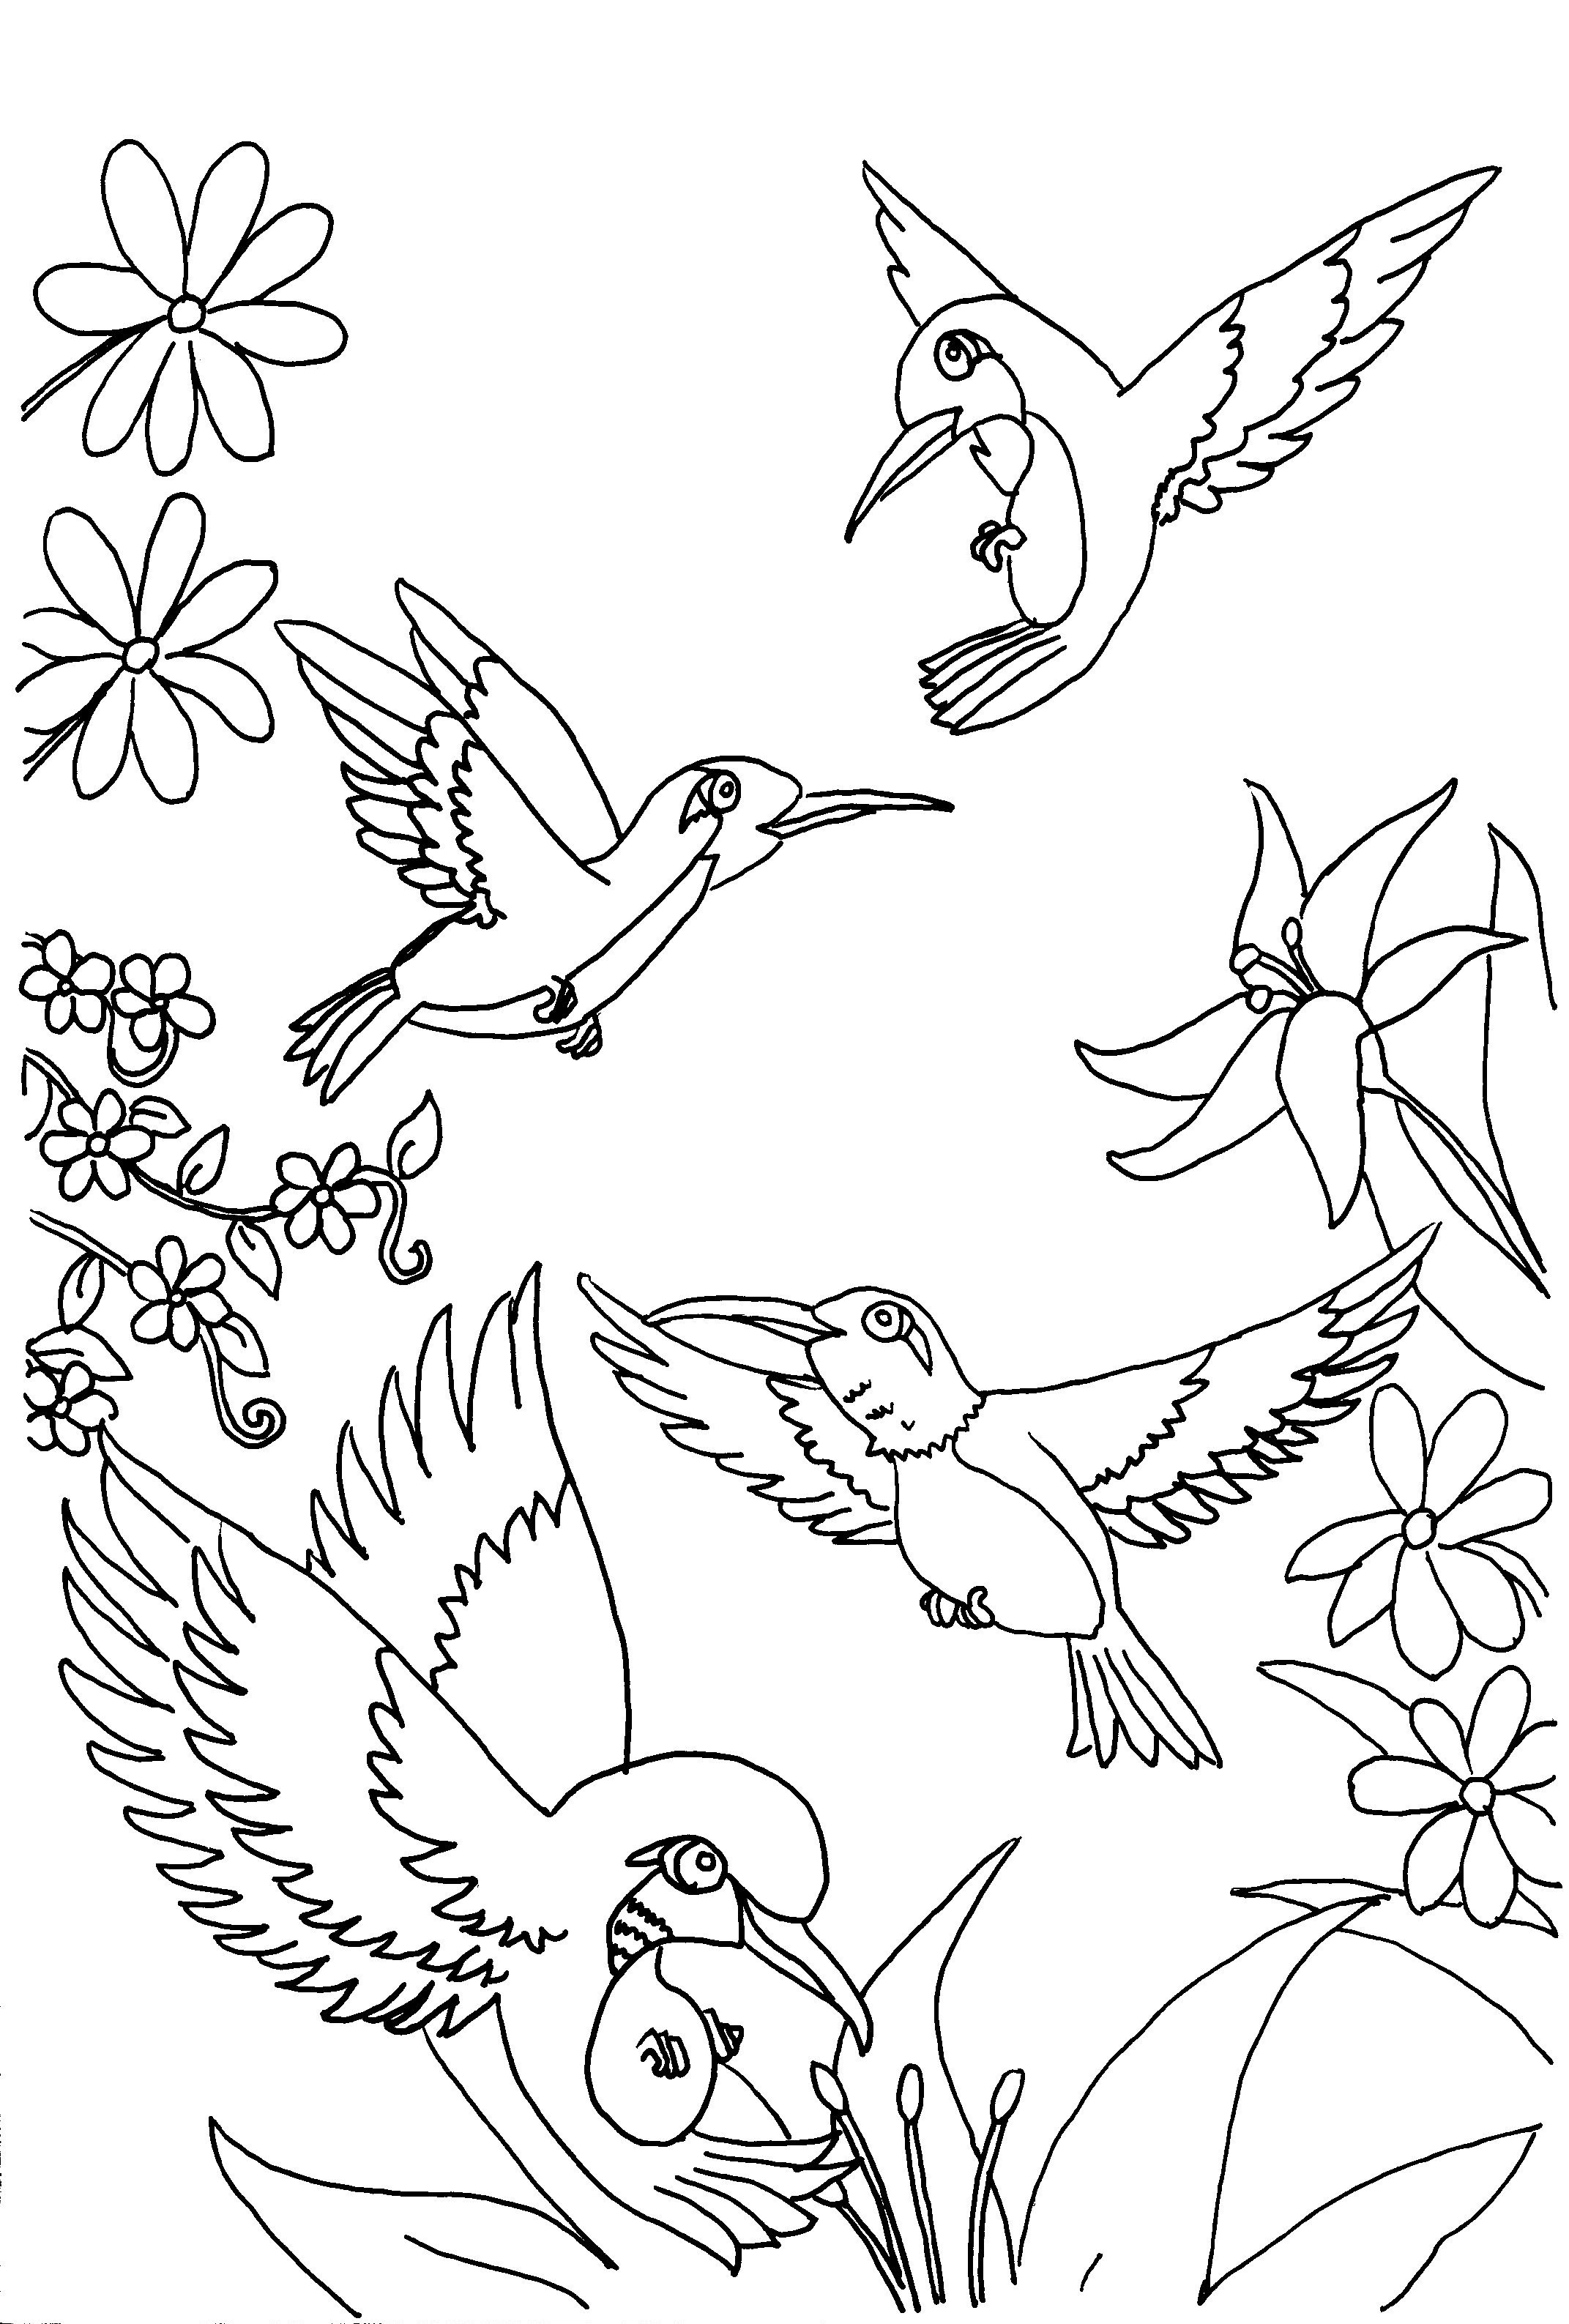 free printable hummingbird coloring pages hummingbird coloring pages printable at getcoloringscom free pages coloring hummingbird printable